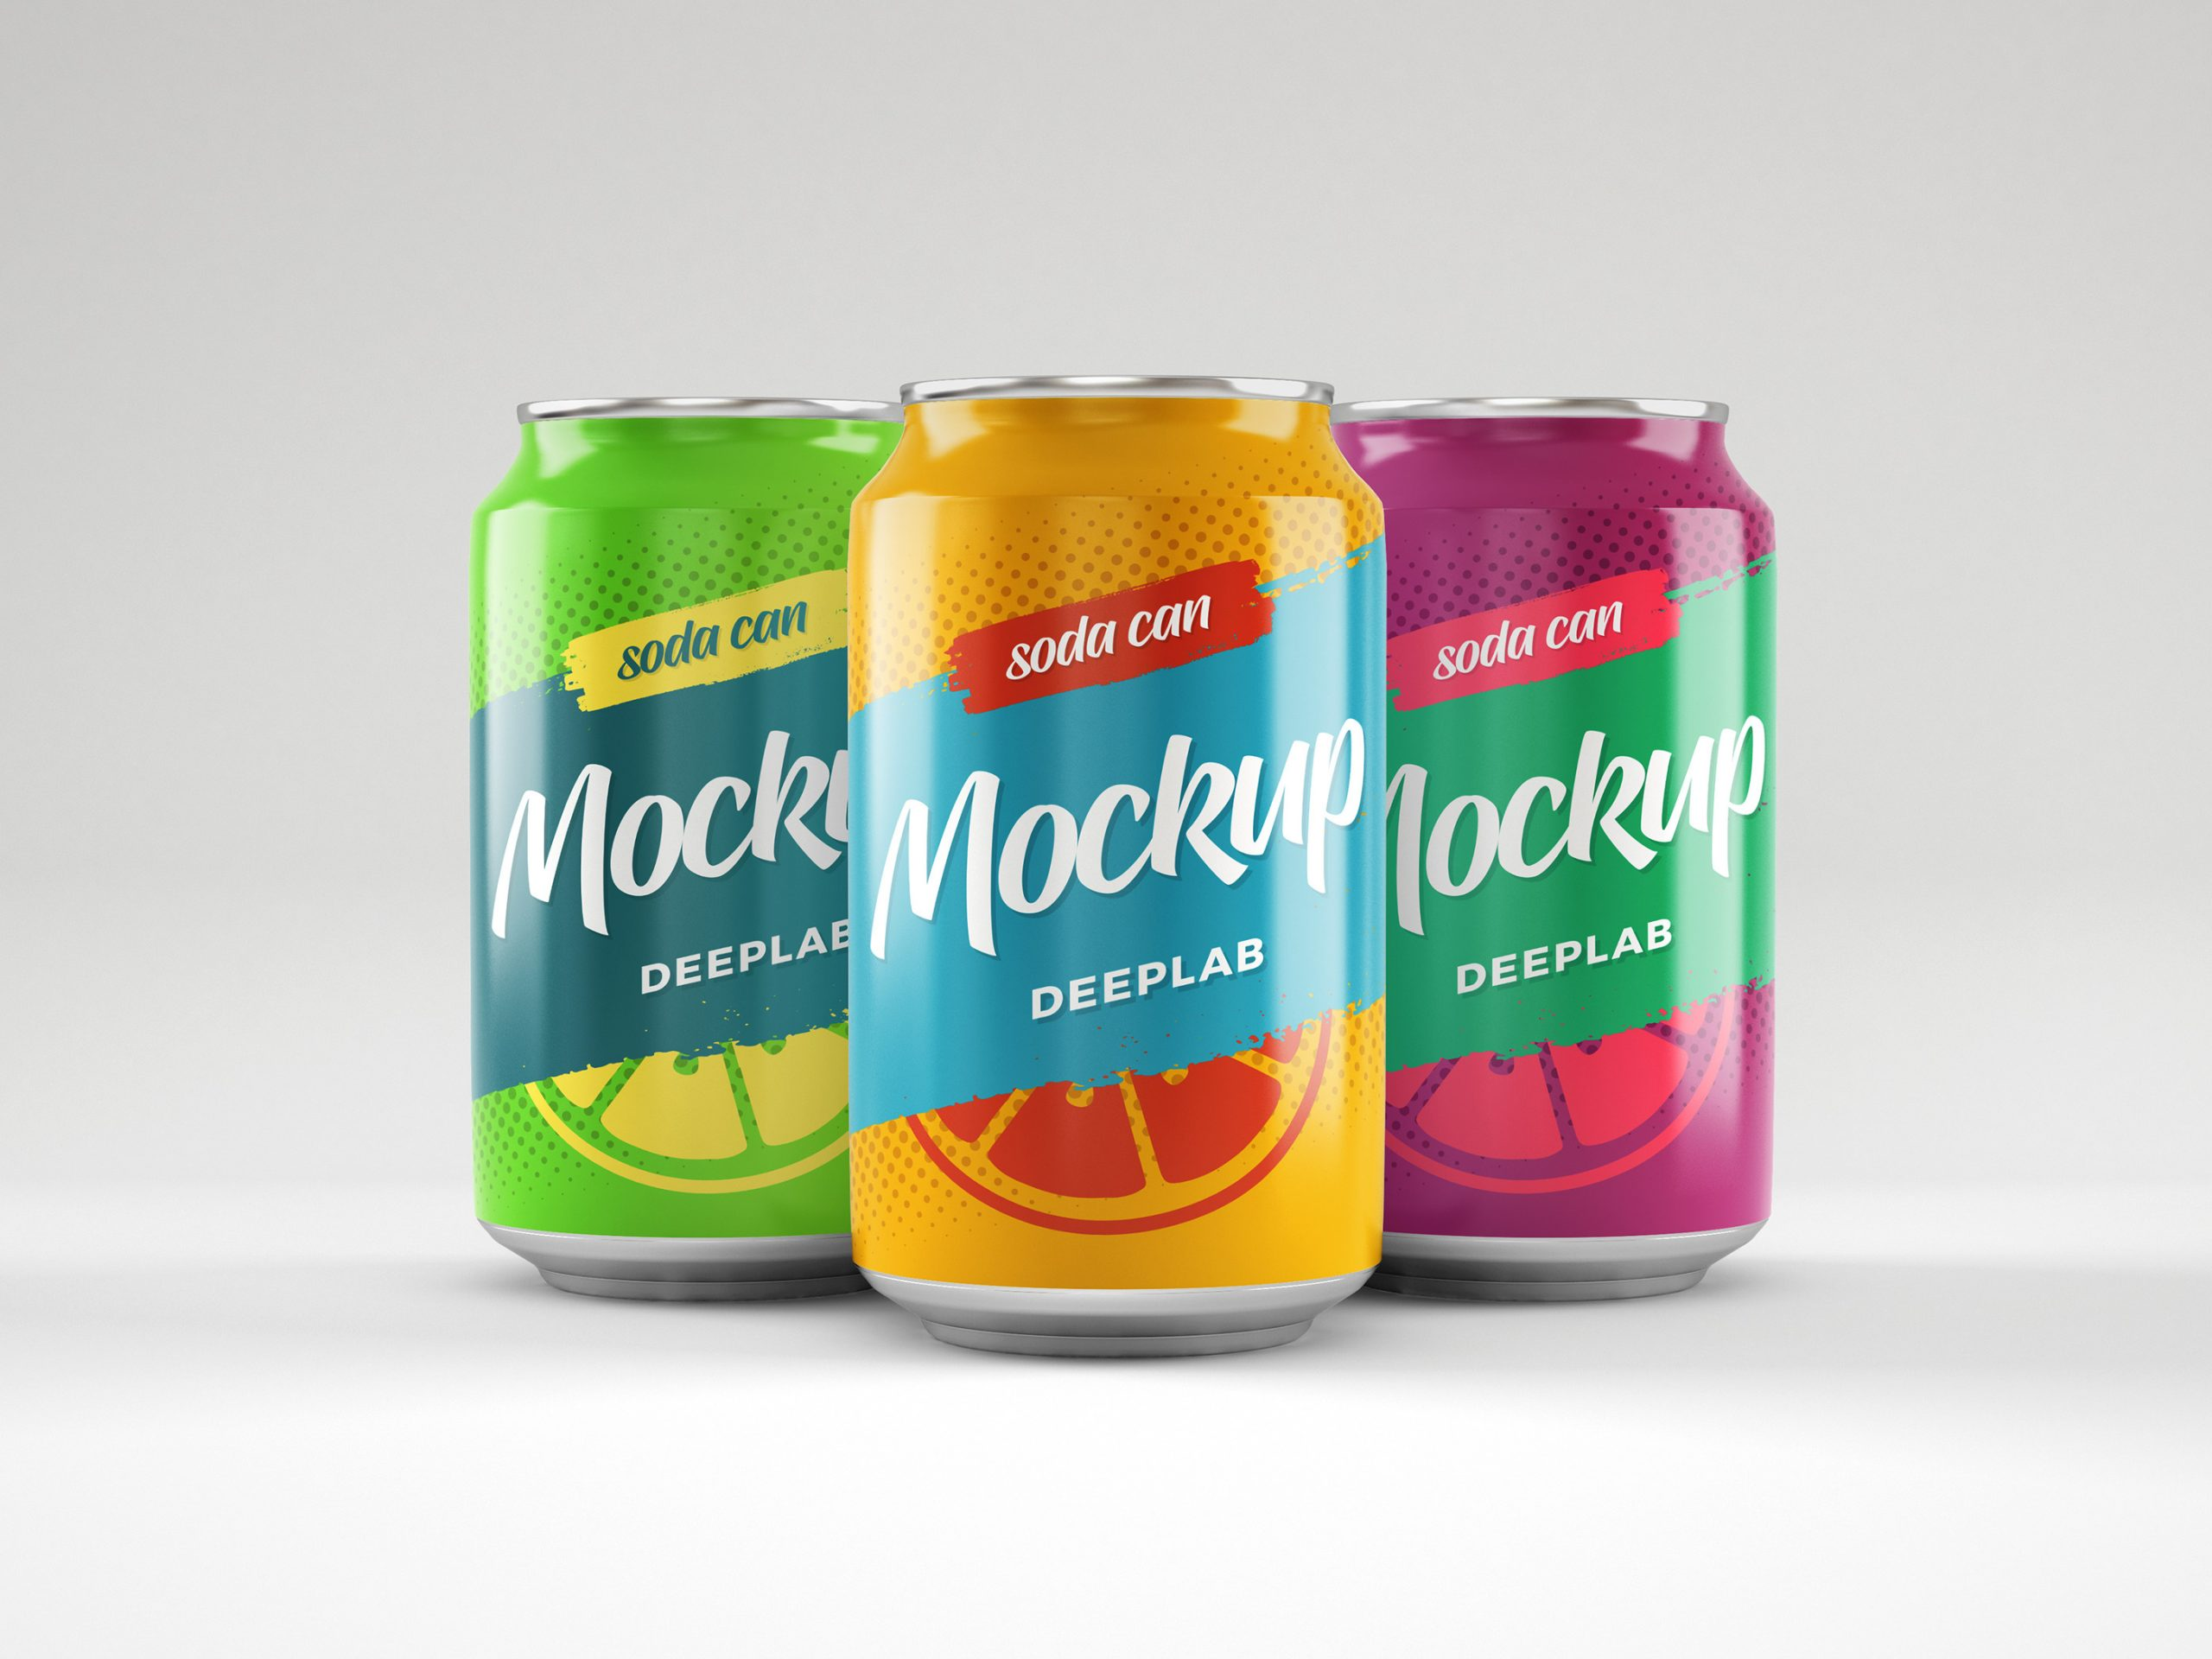 Soda can mockup with editable background color psd